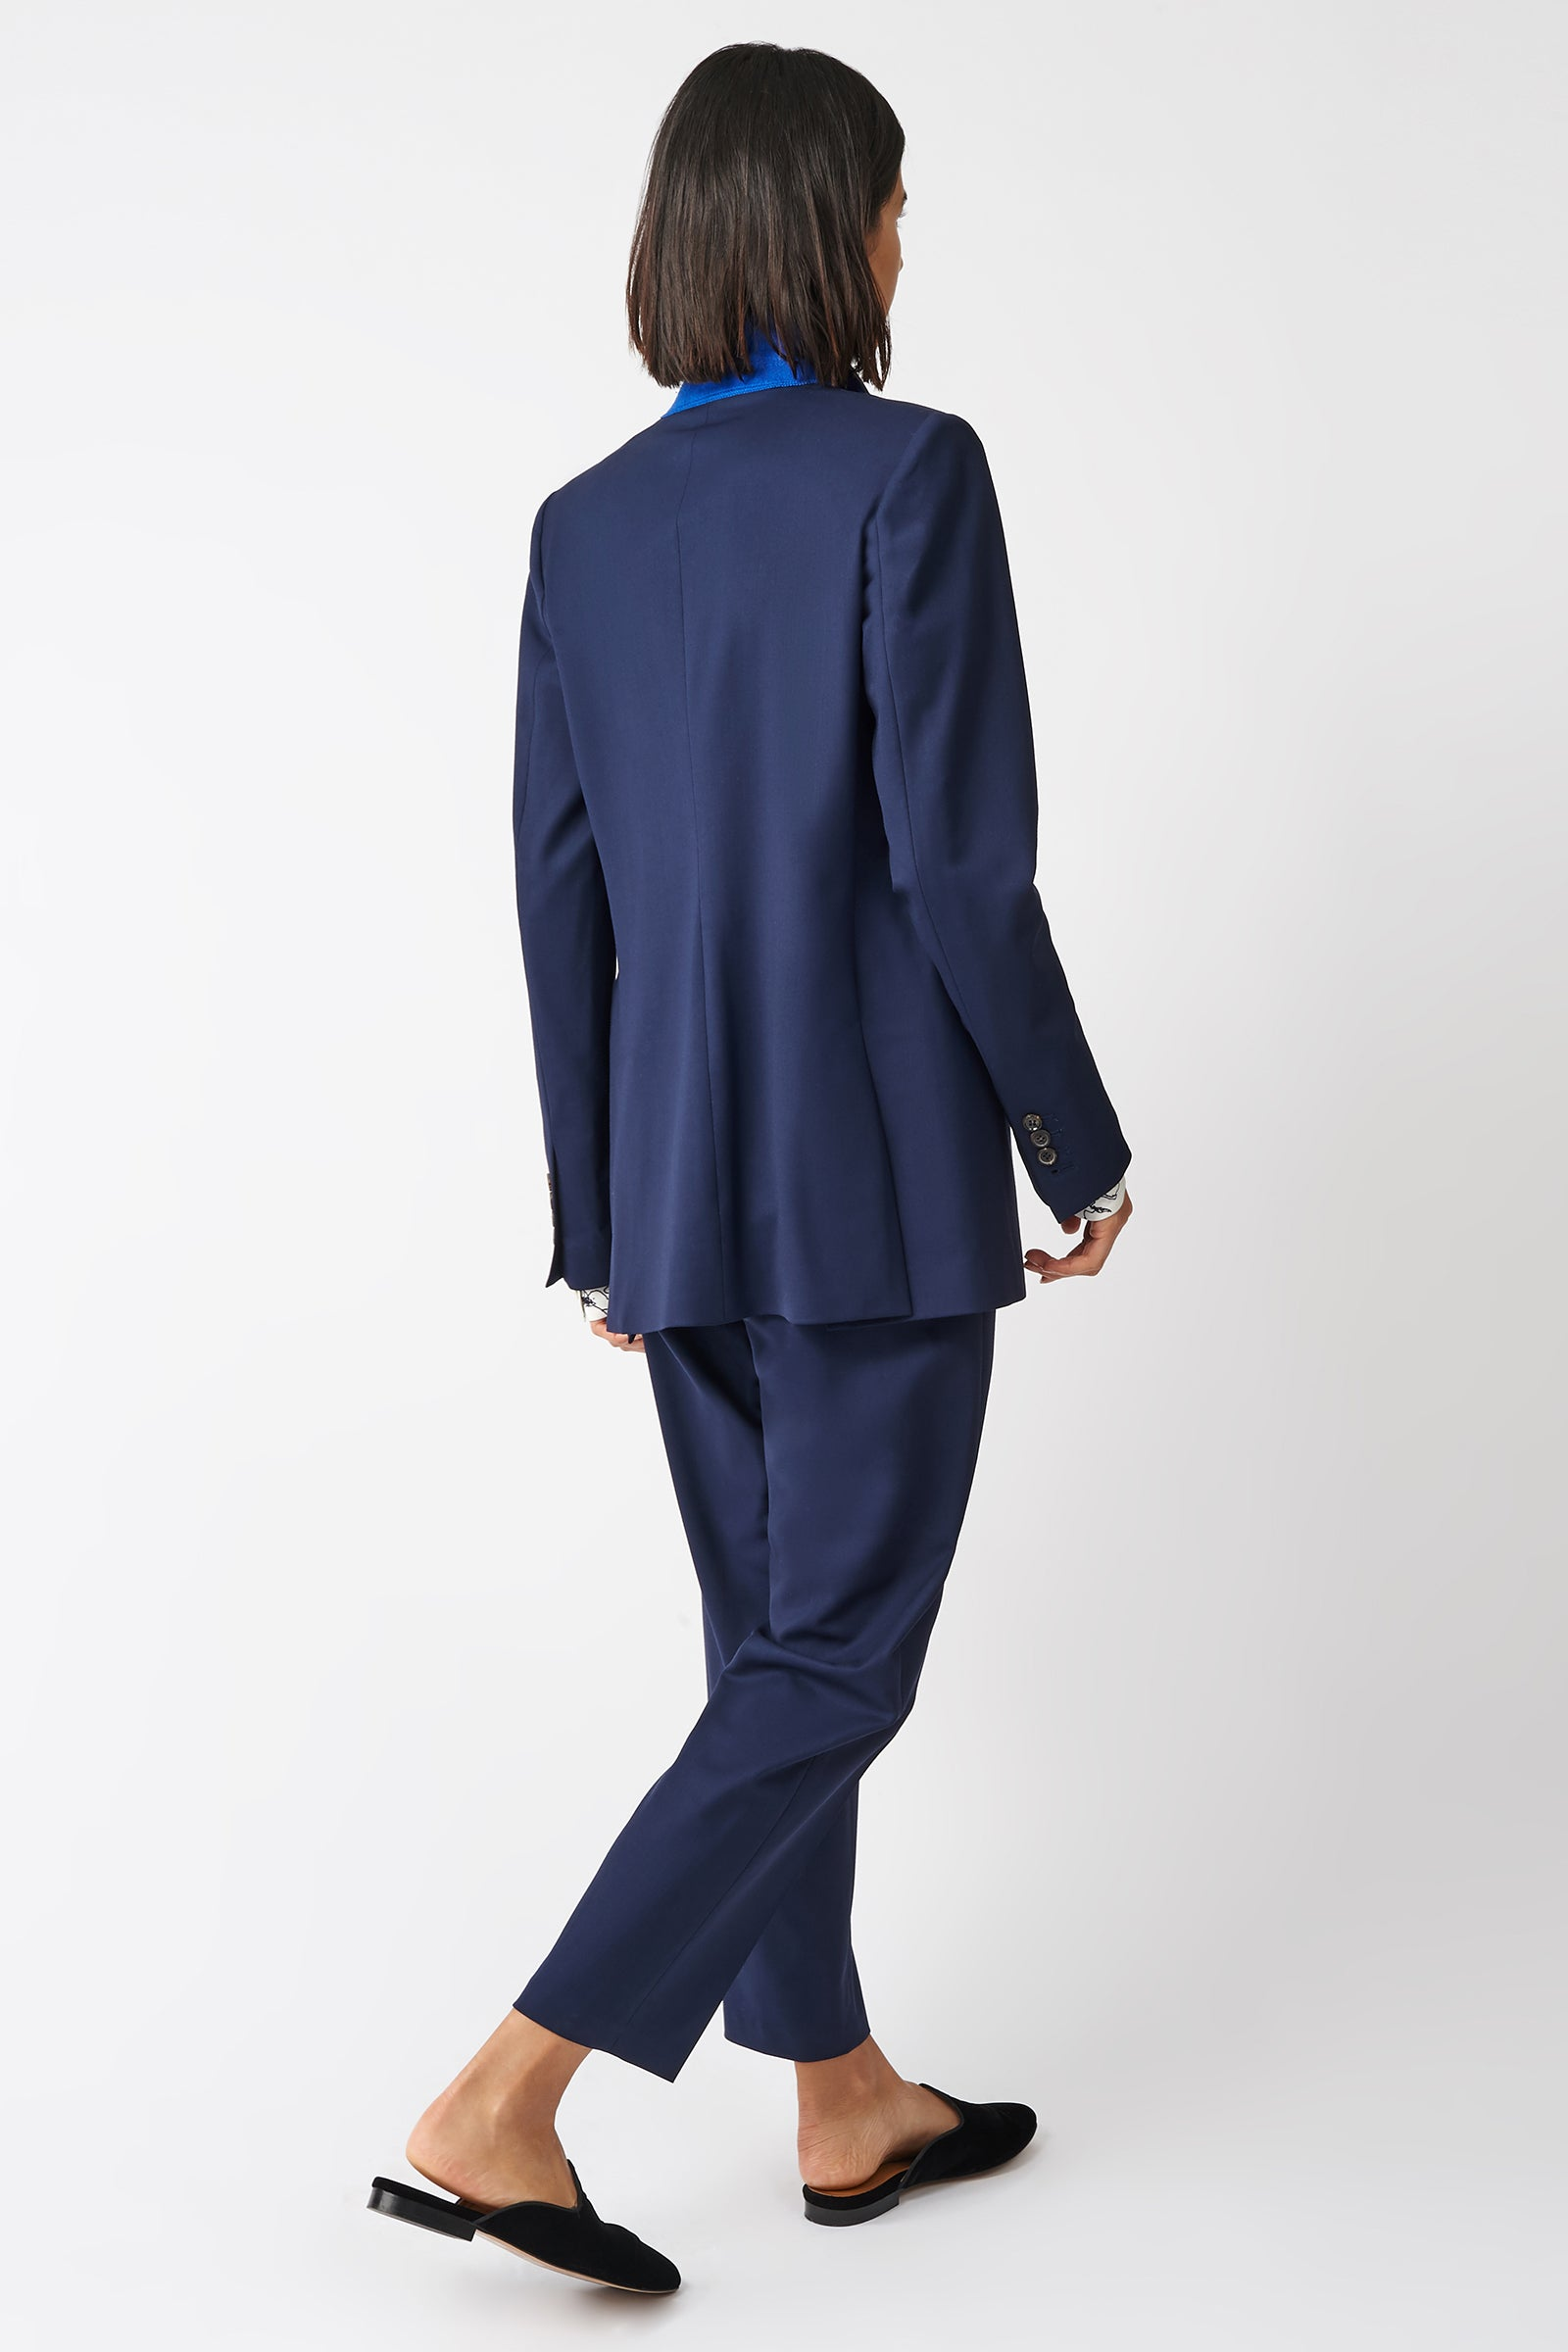 Kal Rieman Classic Notch Blazer in Navy on Model Front View